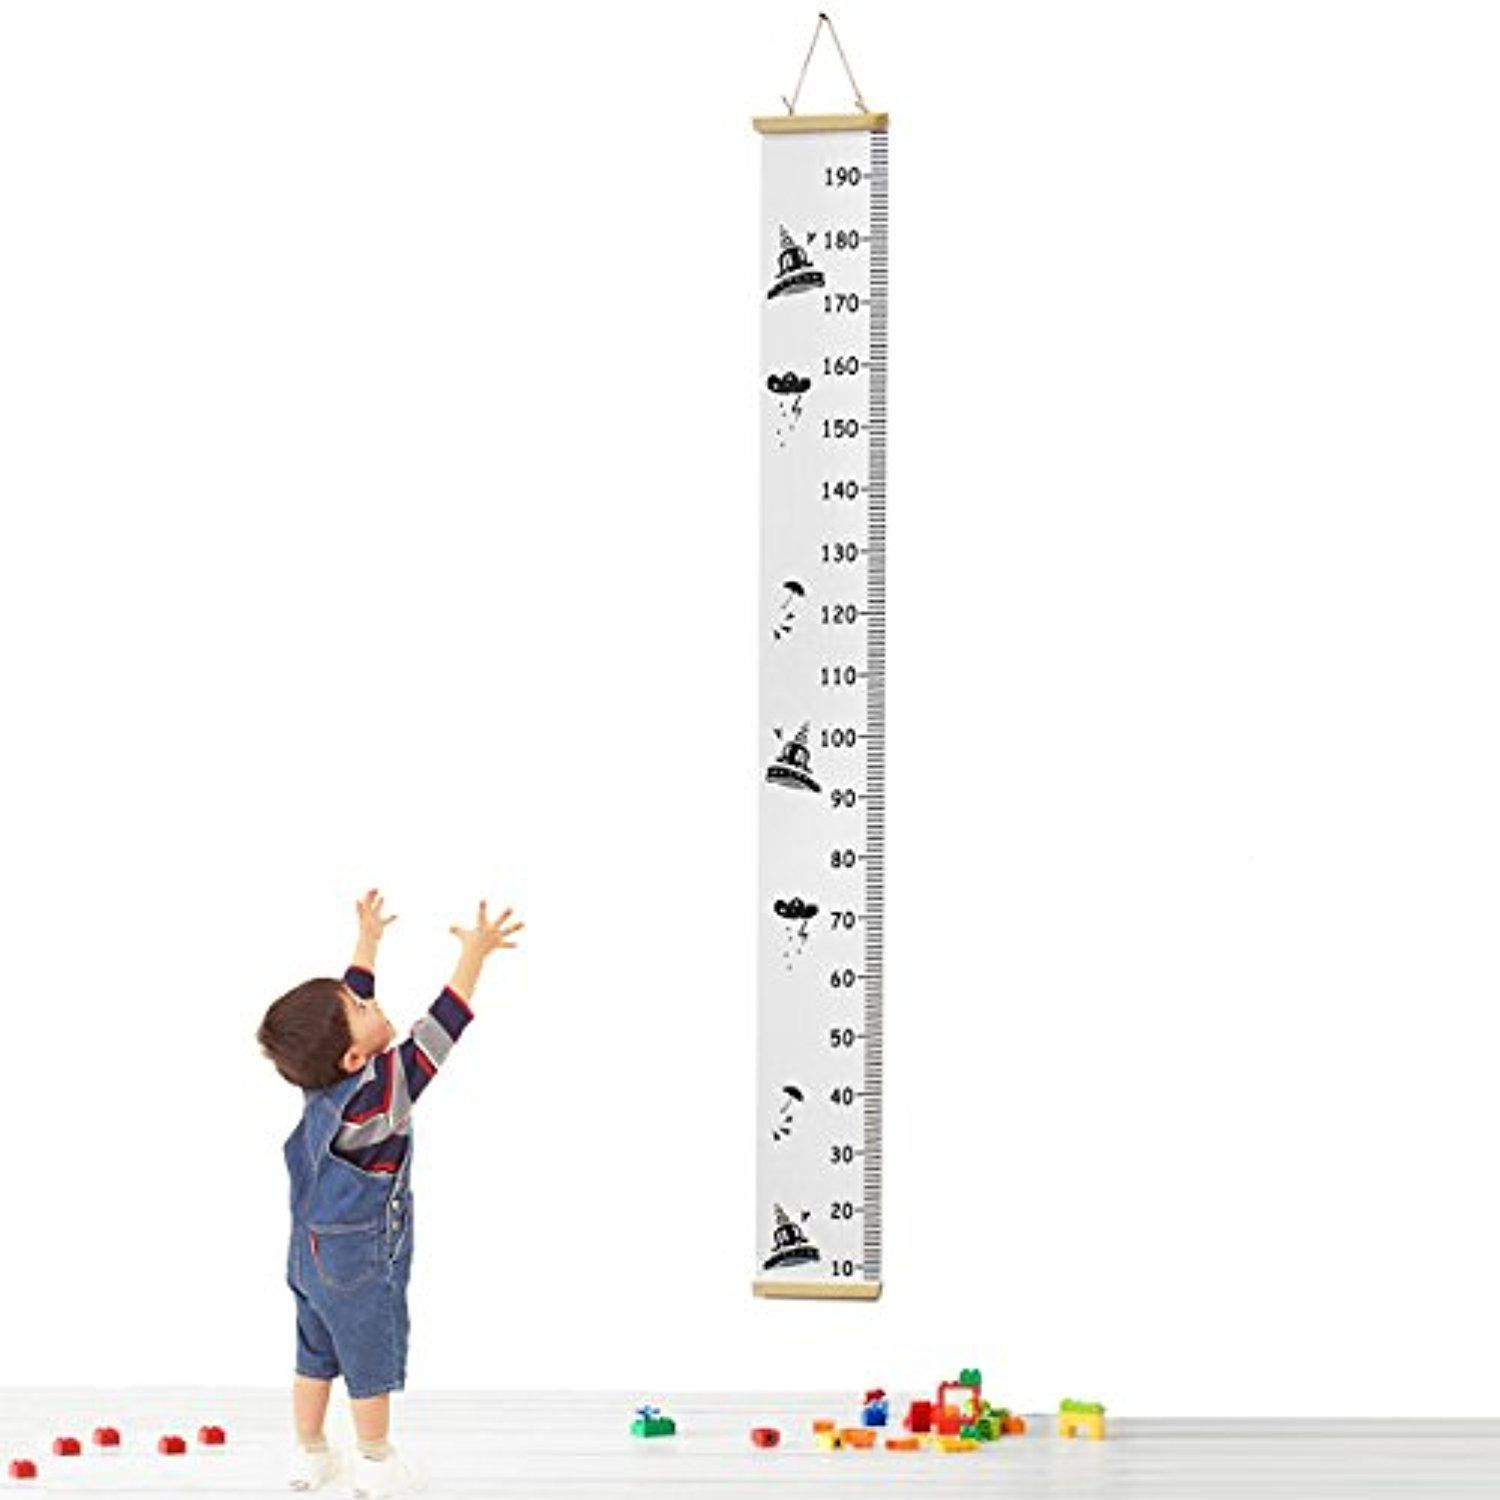 Jeteven baby growth chart height handing ruler roll up for kids jeteven baby growth chart height handing ruler roll up for kids canvas wood frame height chart wall decor 79 x 79 click image for more details nvjuhfo Images